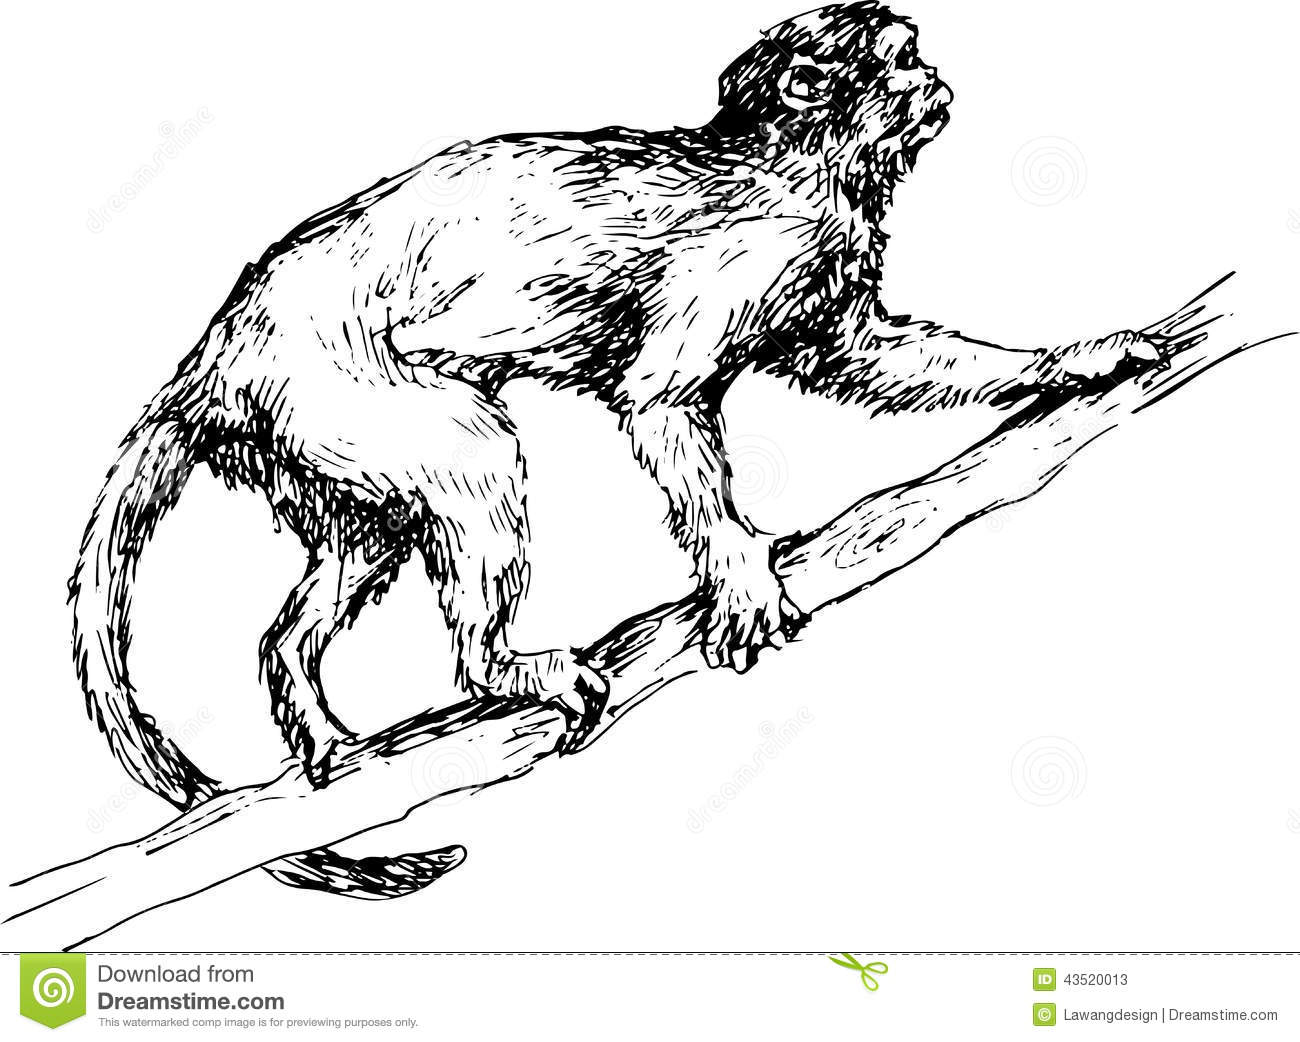 hand drawn monkey illustration 43520013 صور الكسلان ابيض واسود   Photo sloths